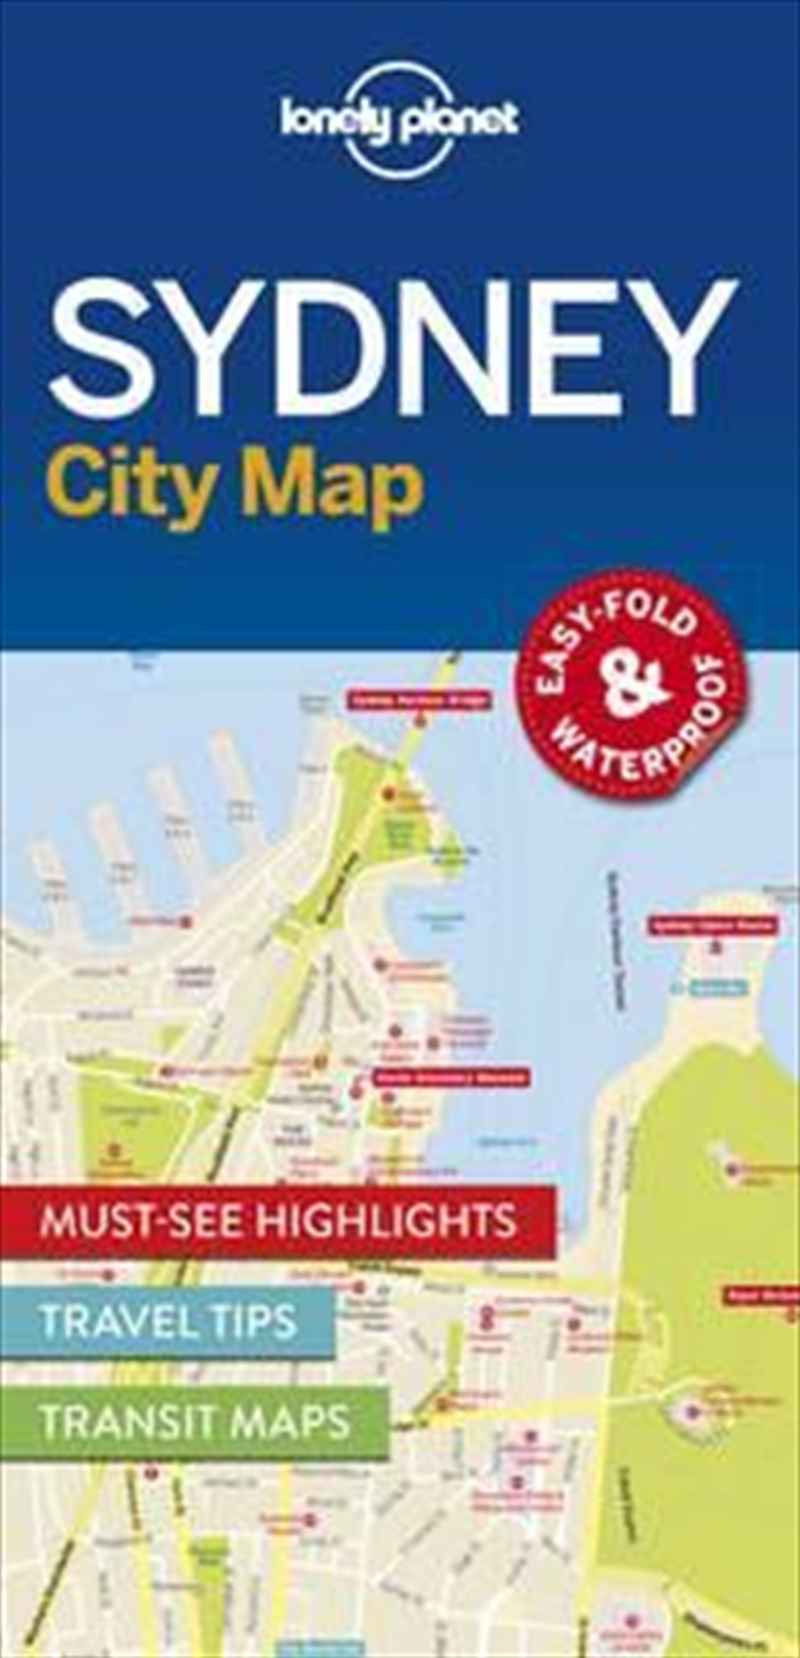 Sydney City Map: Edition 1 | Sheet Map